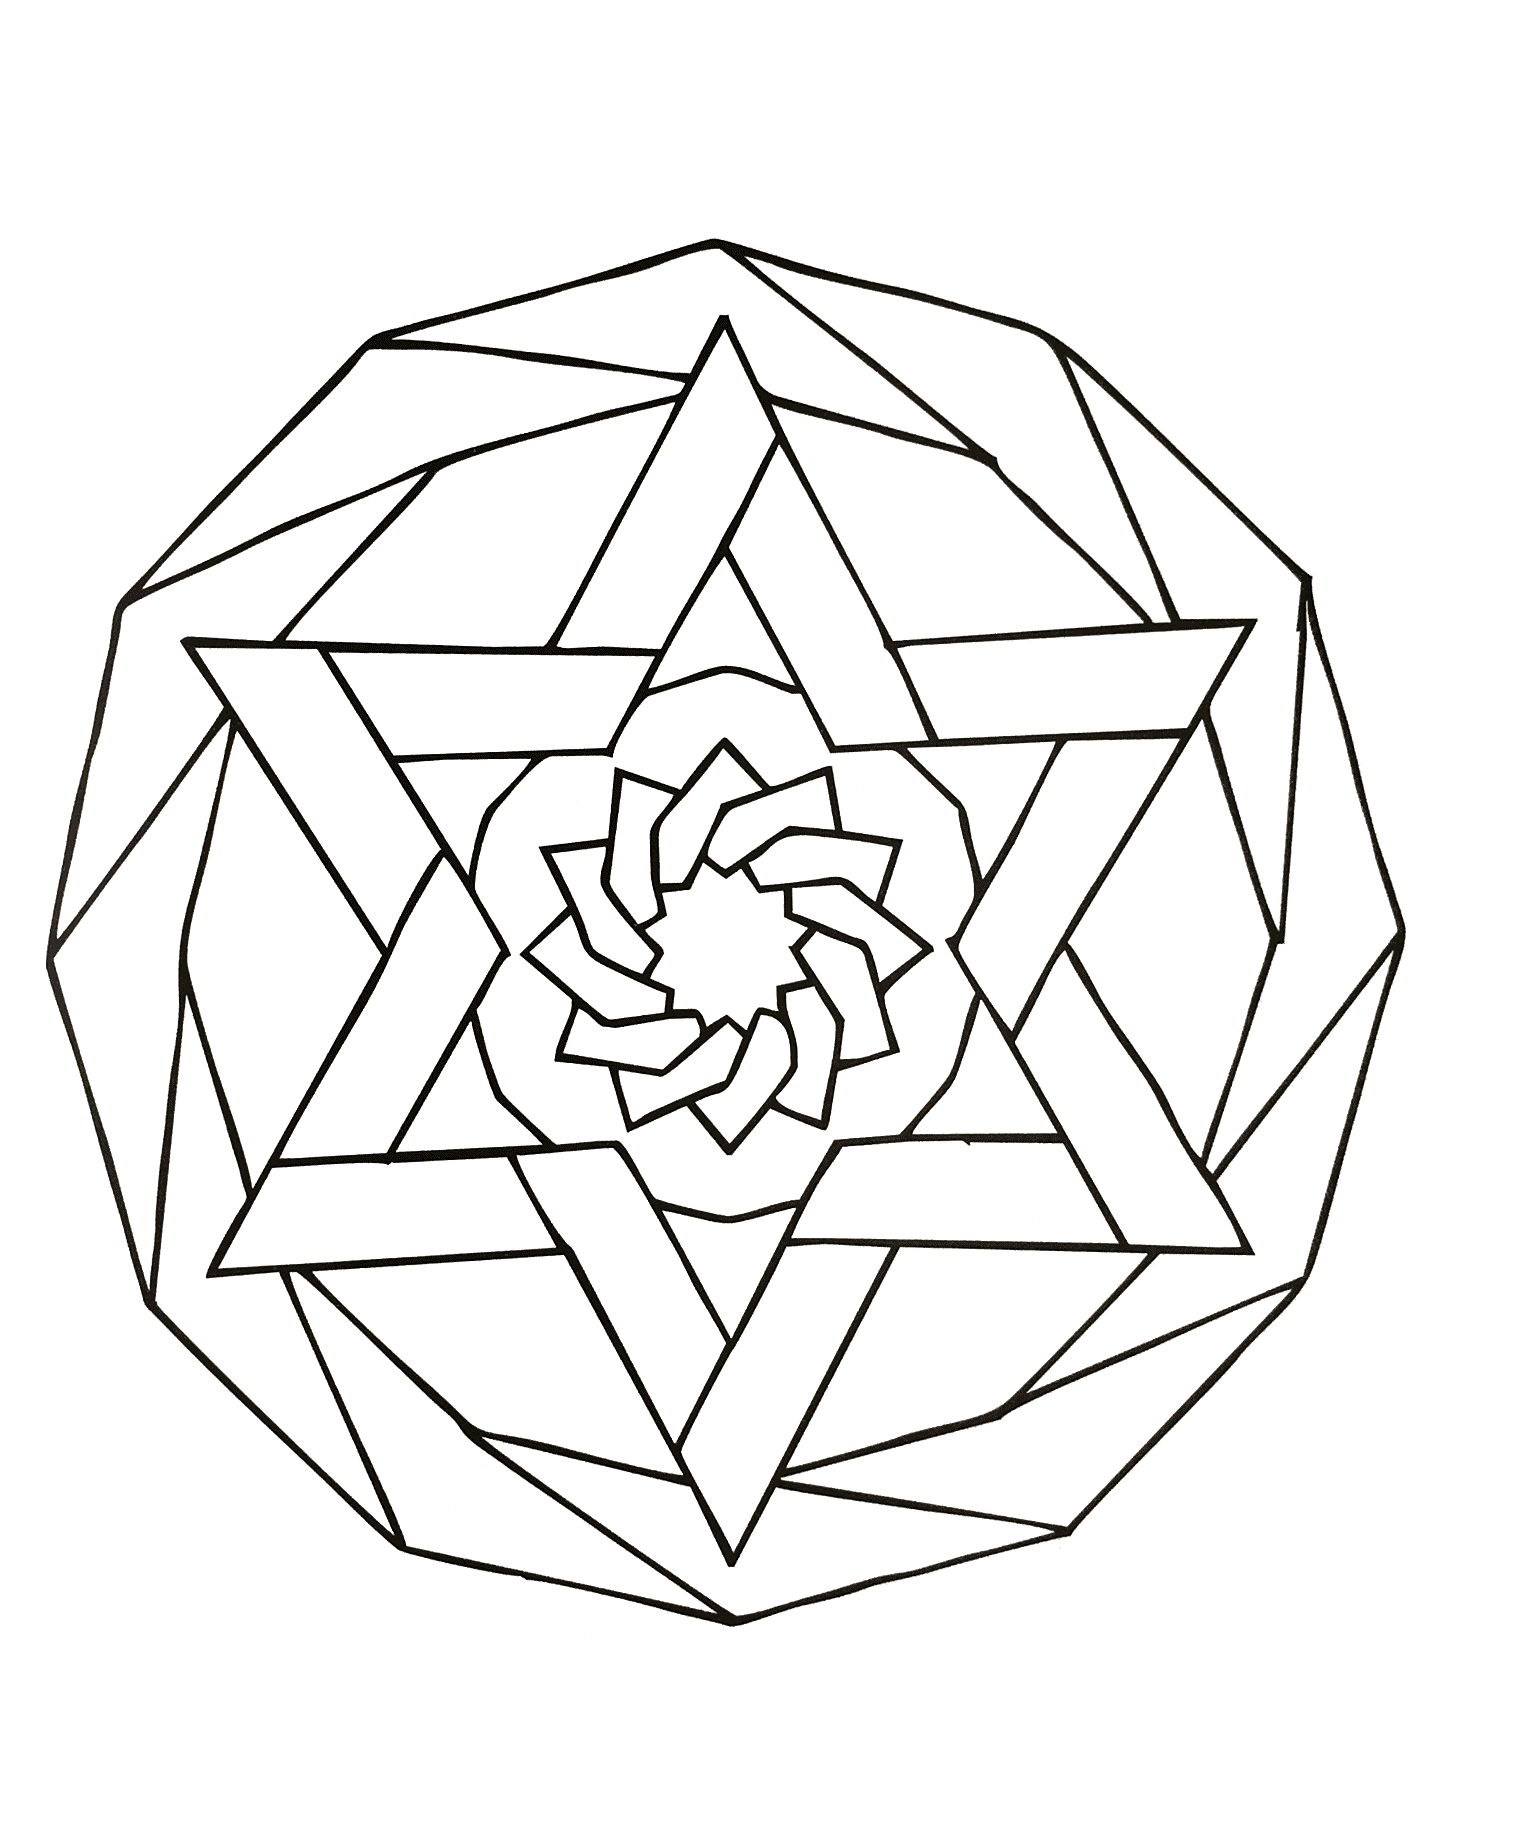 simple mandala 88 from the gallery kids mandalas - Simple Mandala Coloring Pages Kid